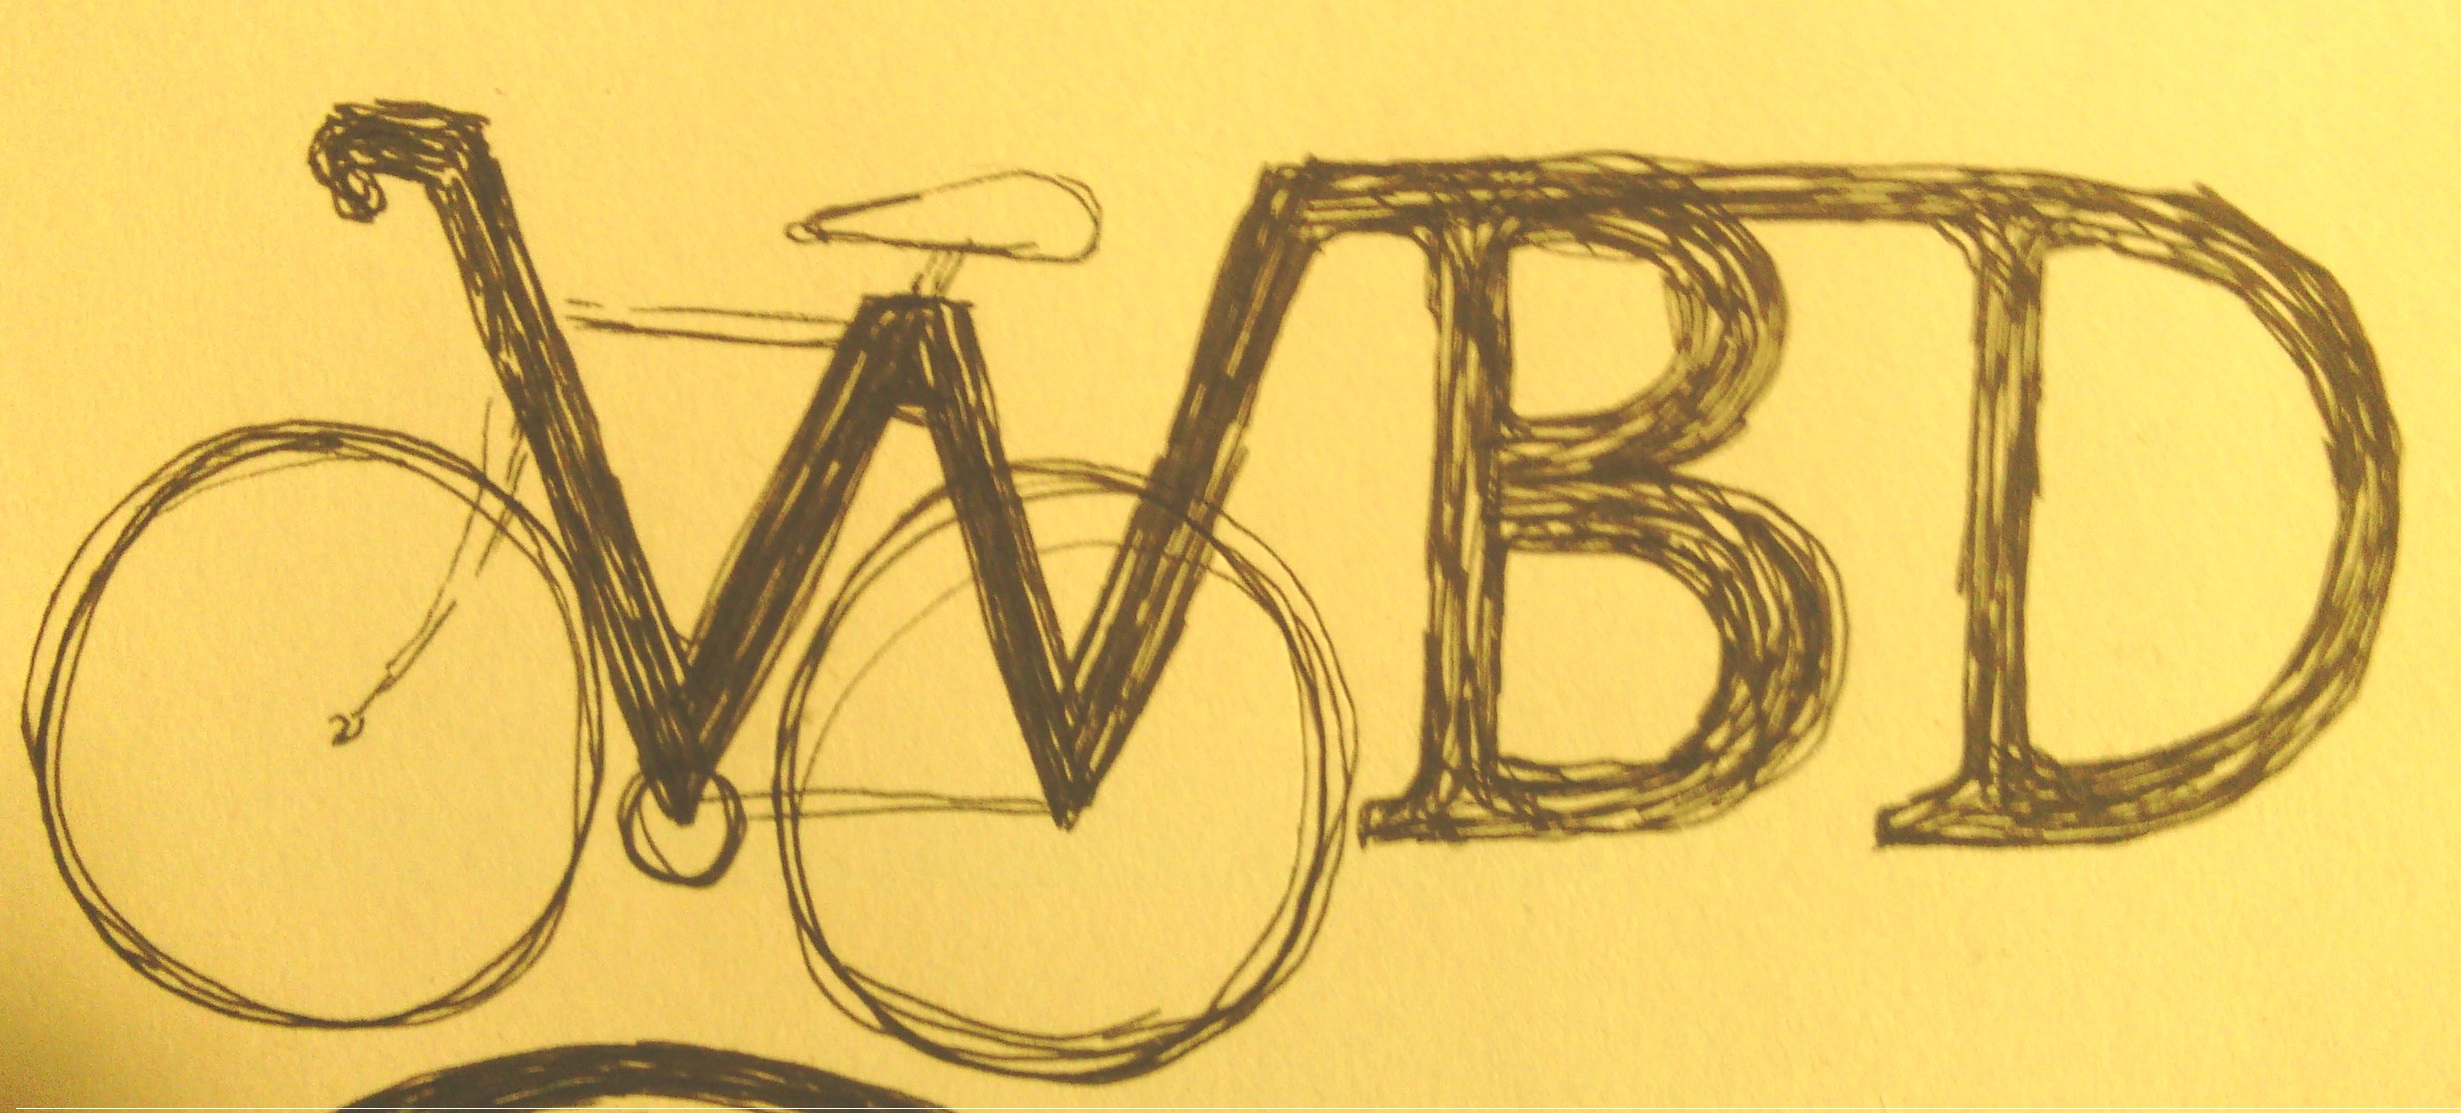 Within Biking Distance possible logo - road bike drawing